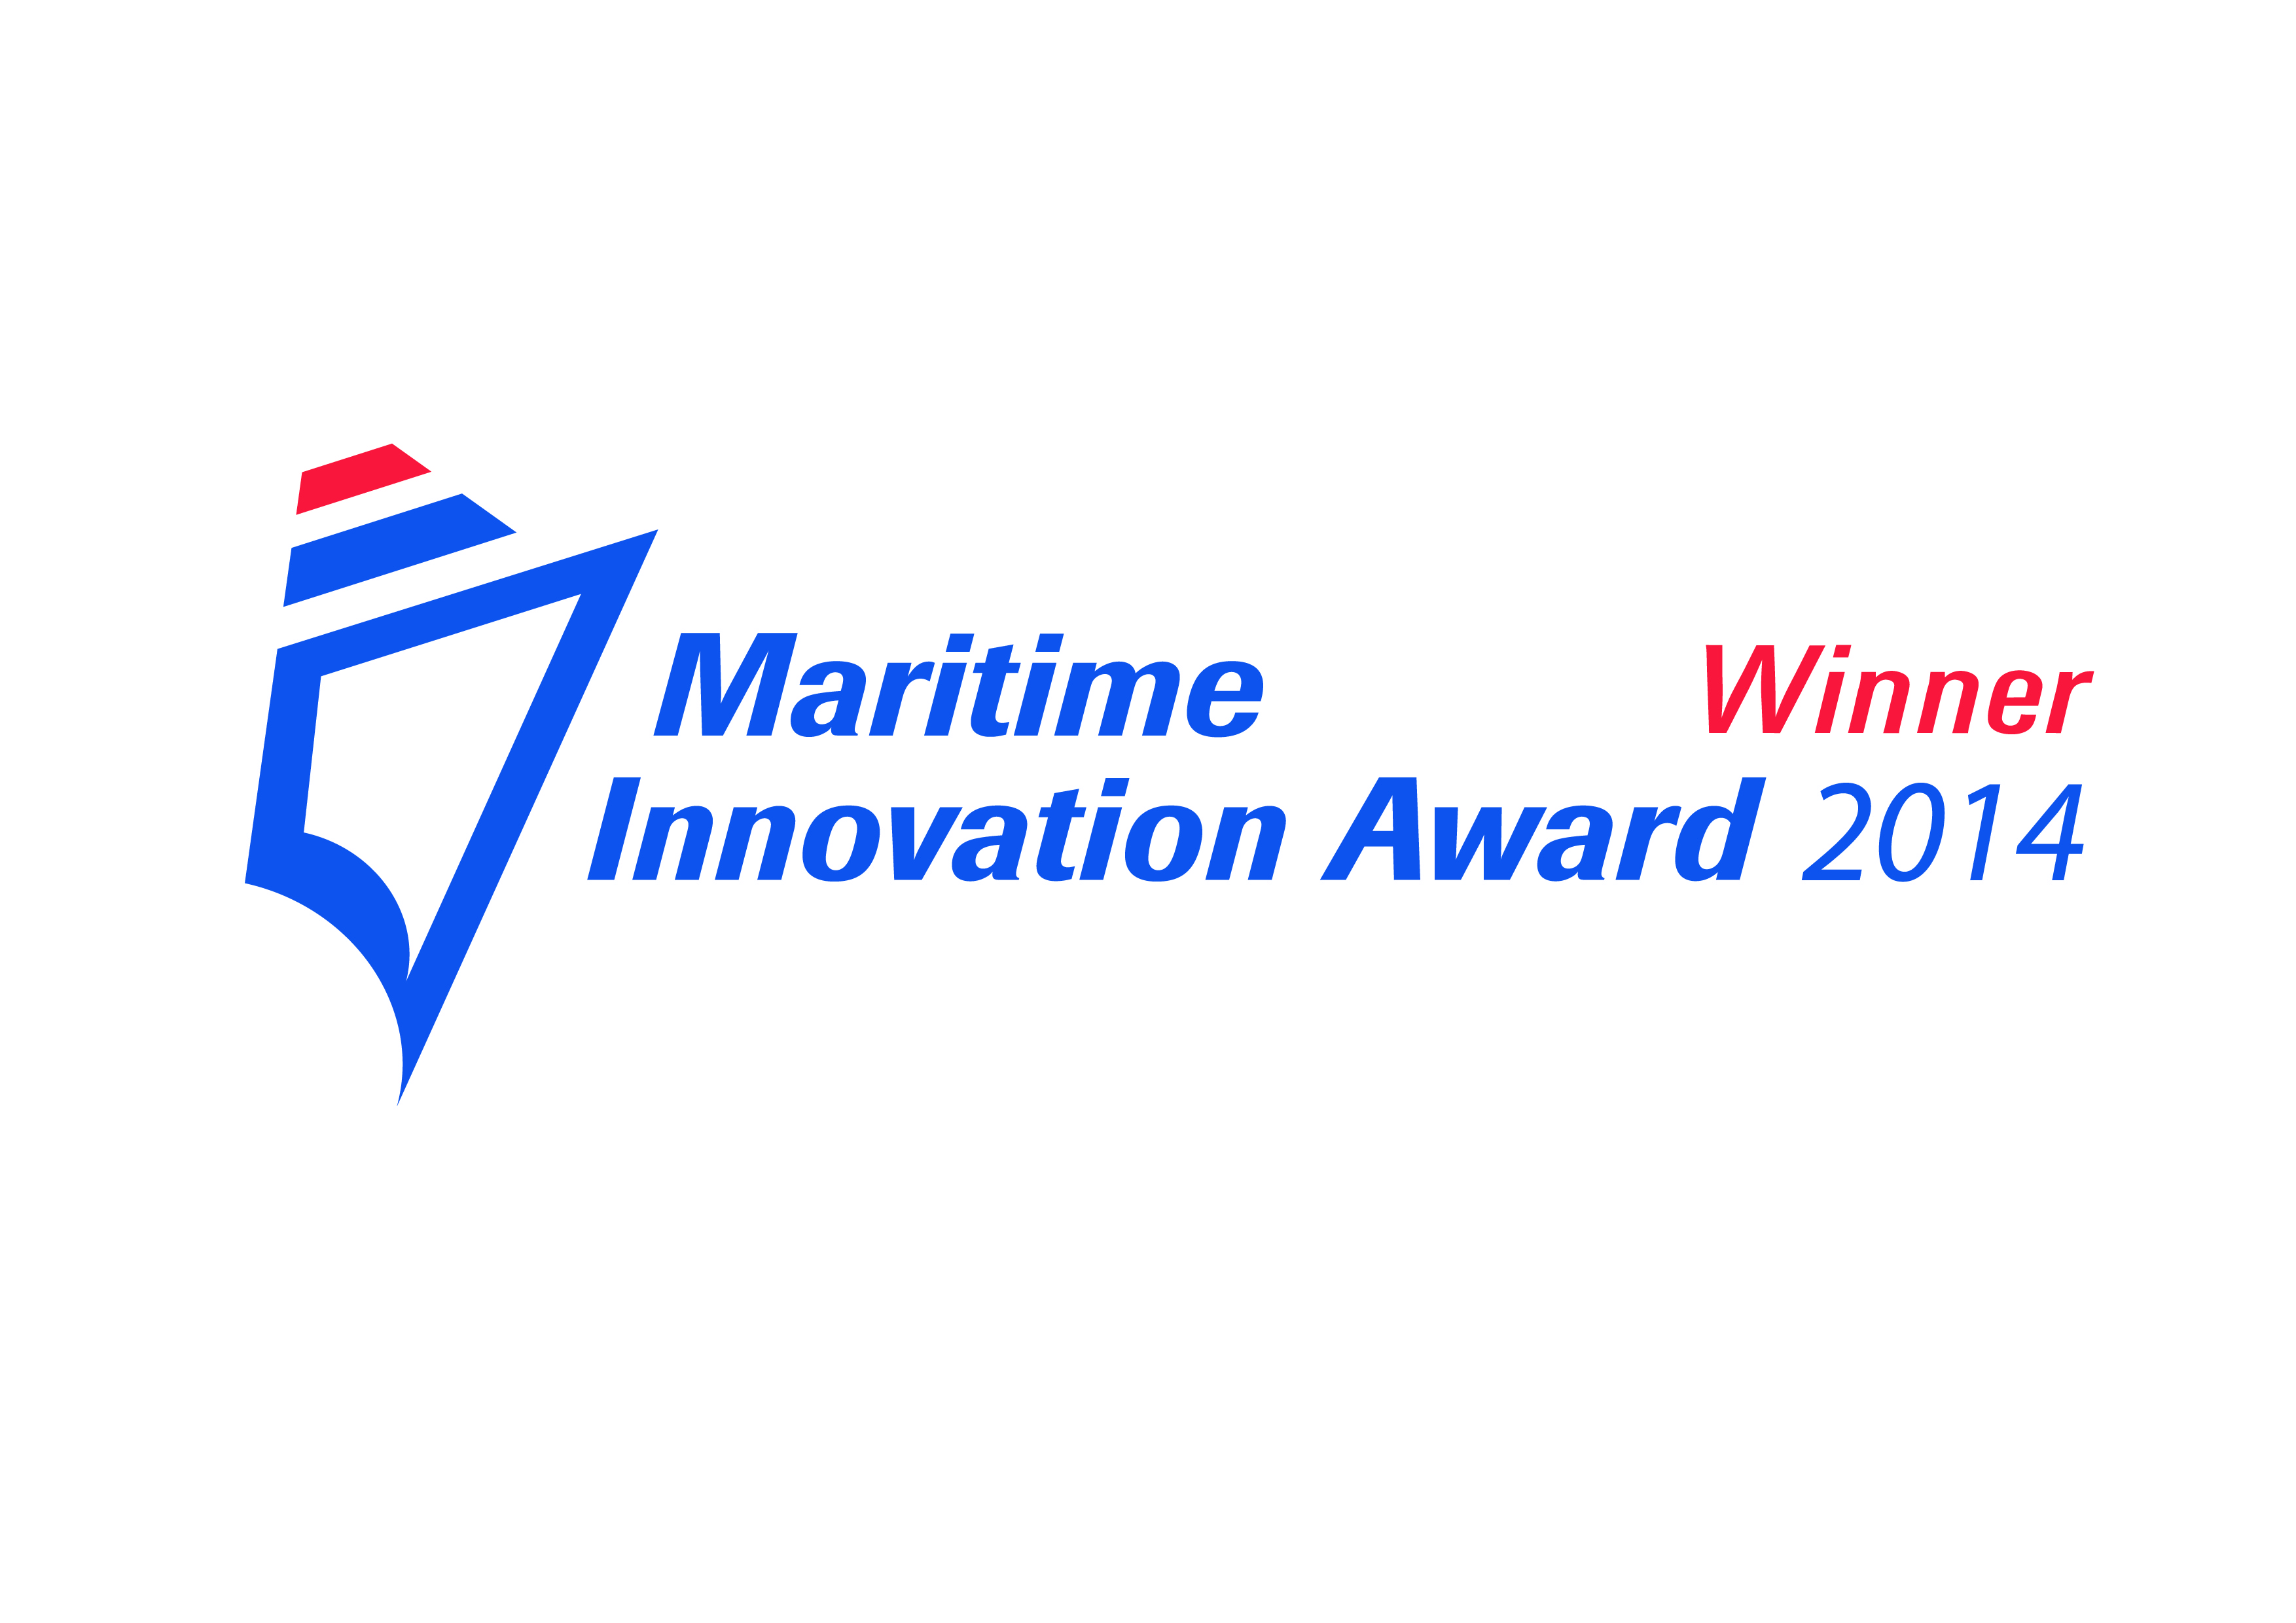 Maritime Innovation Award